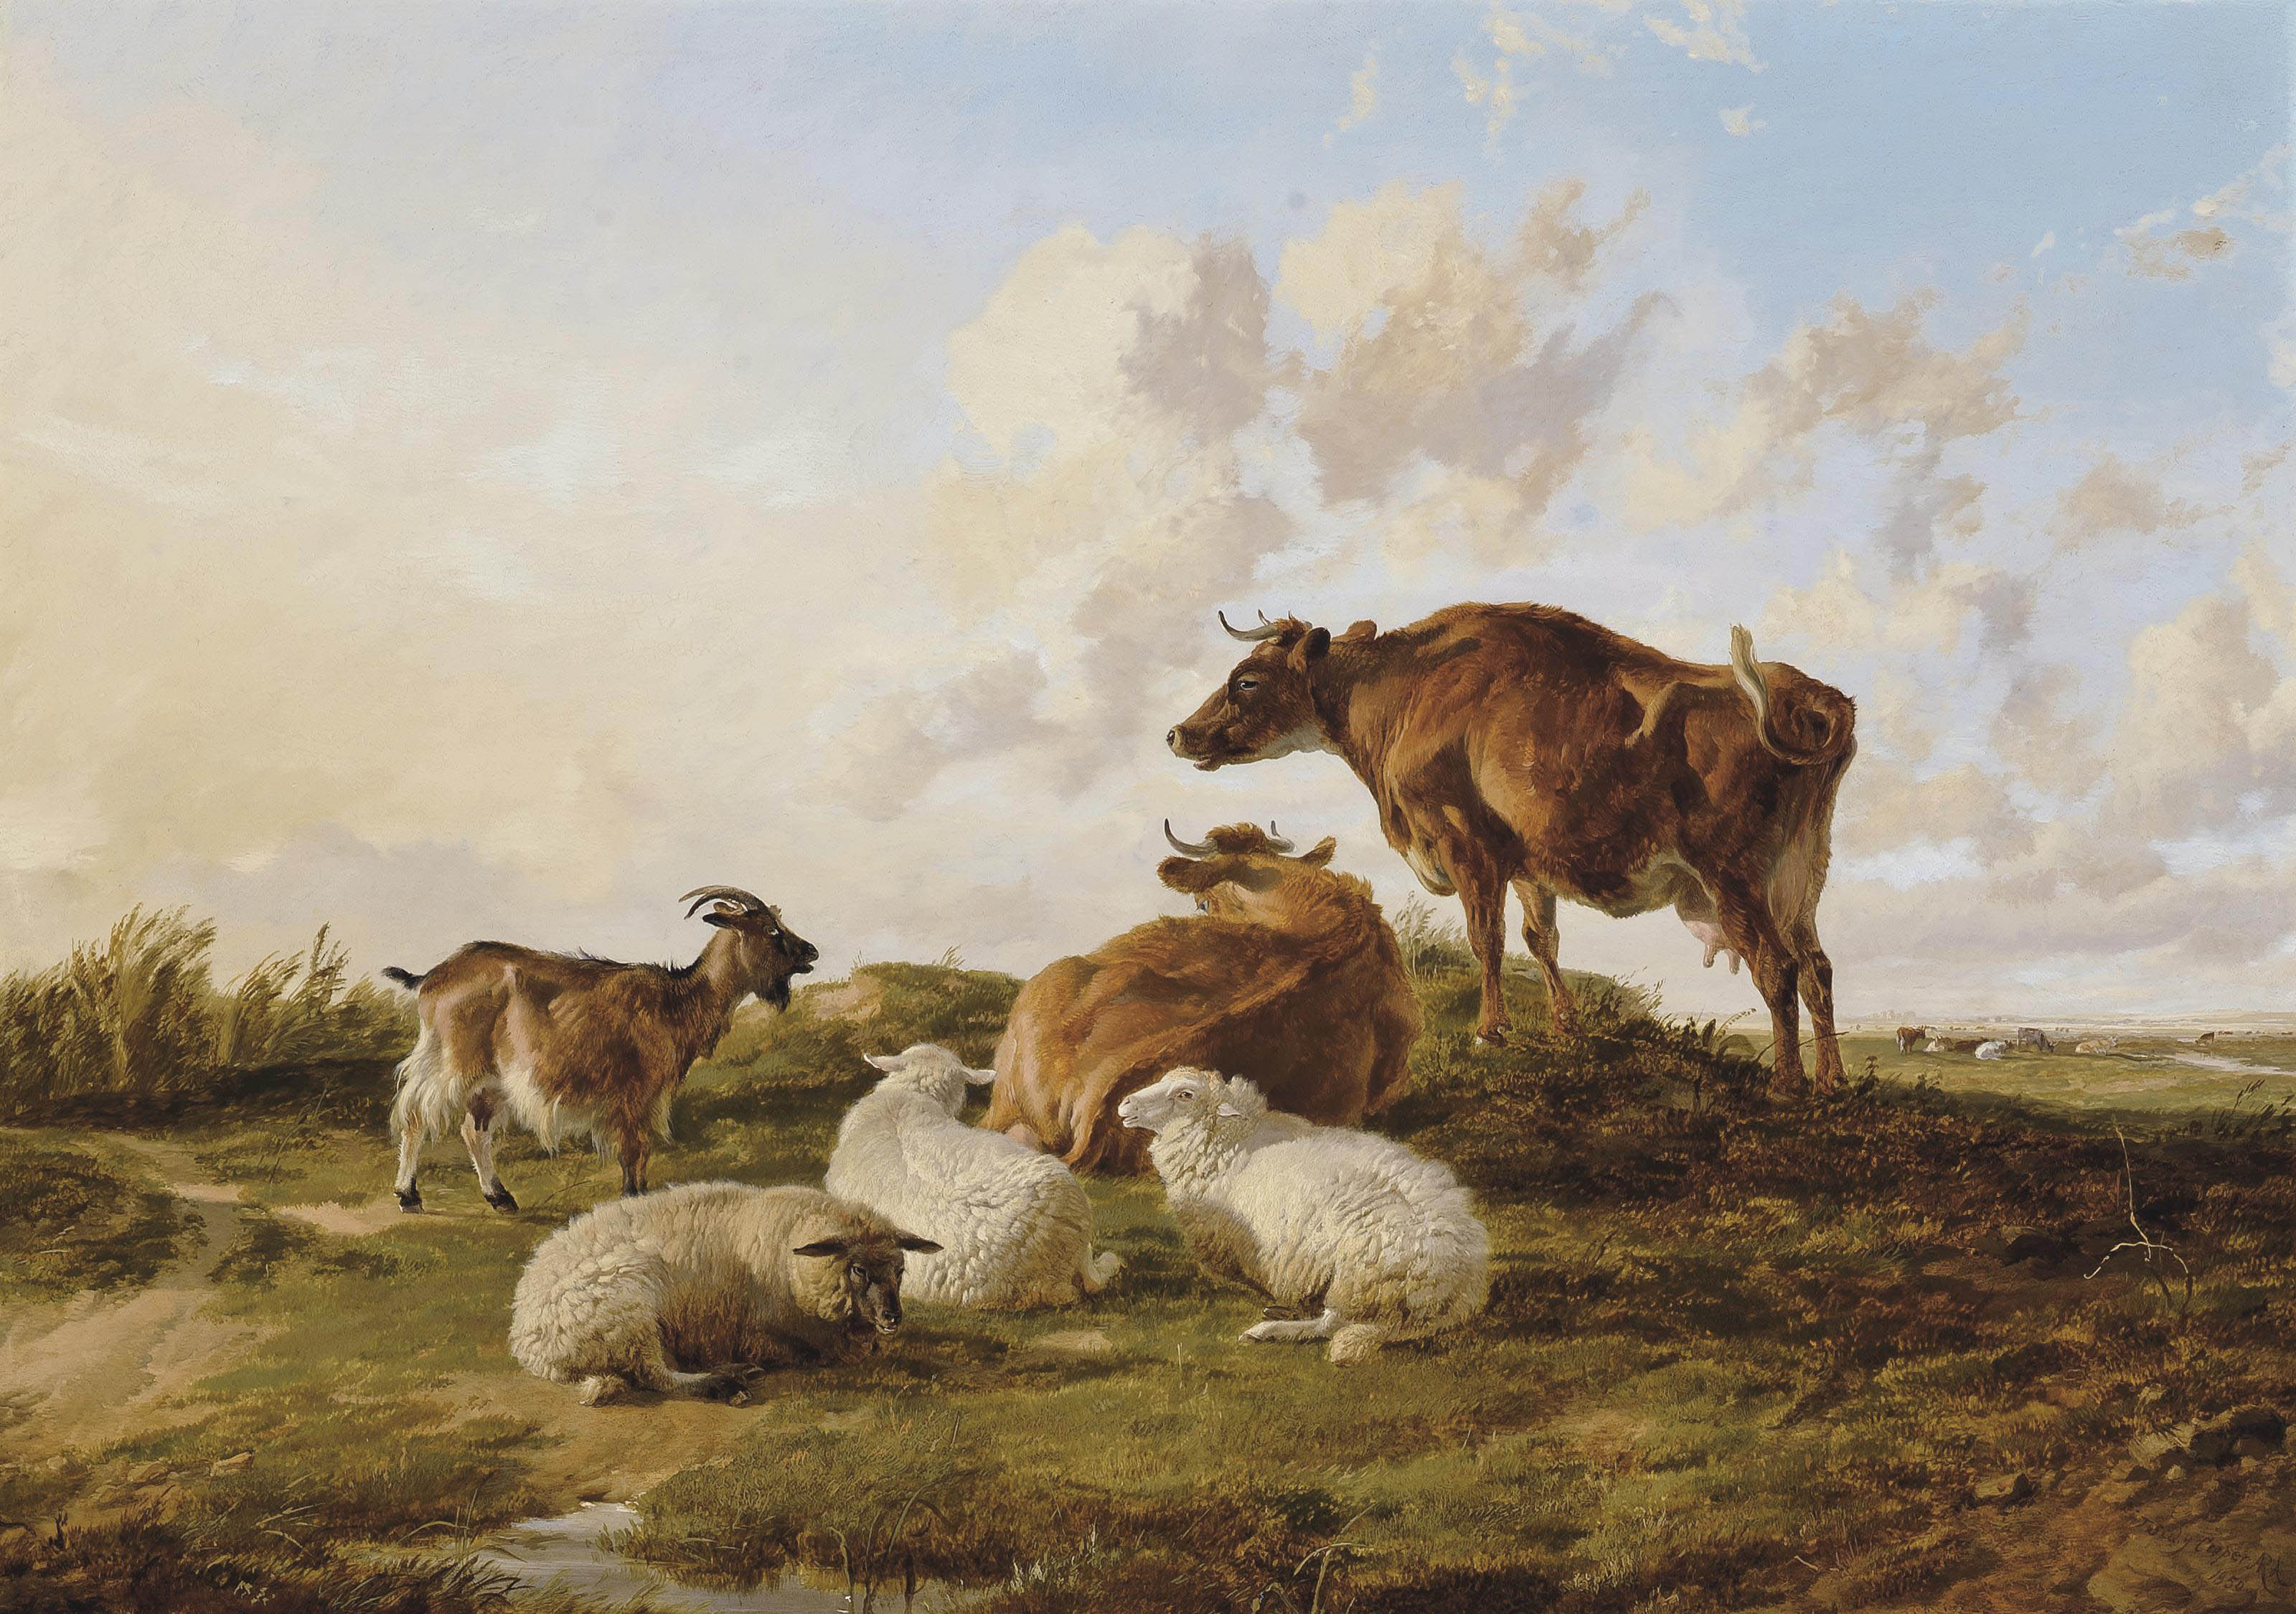 Cows, sheep and goat